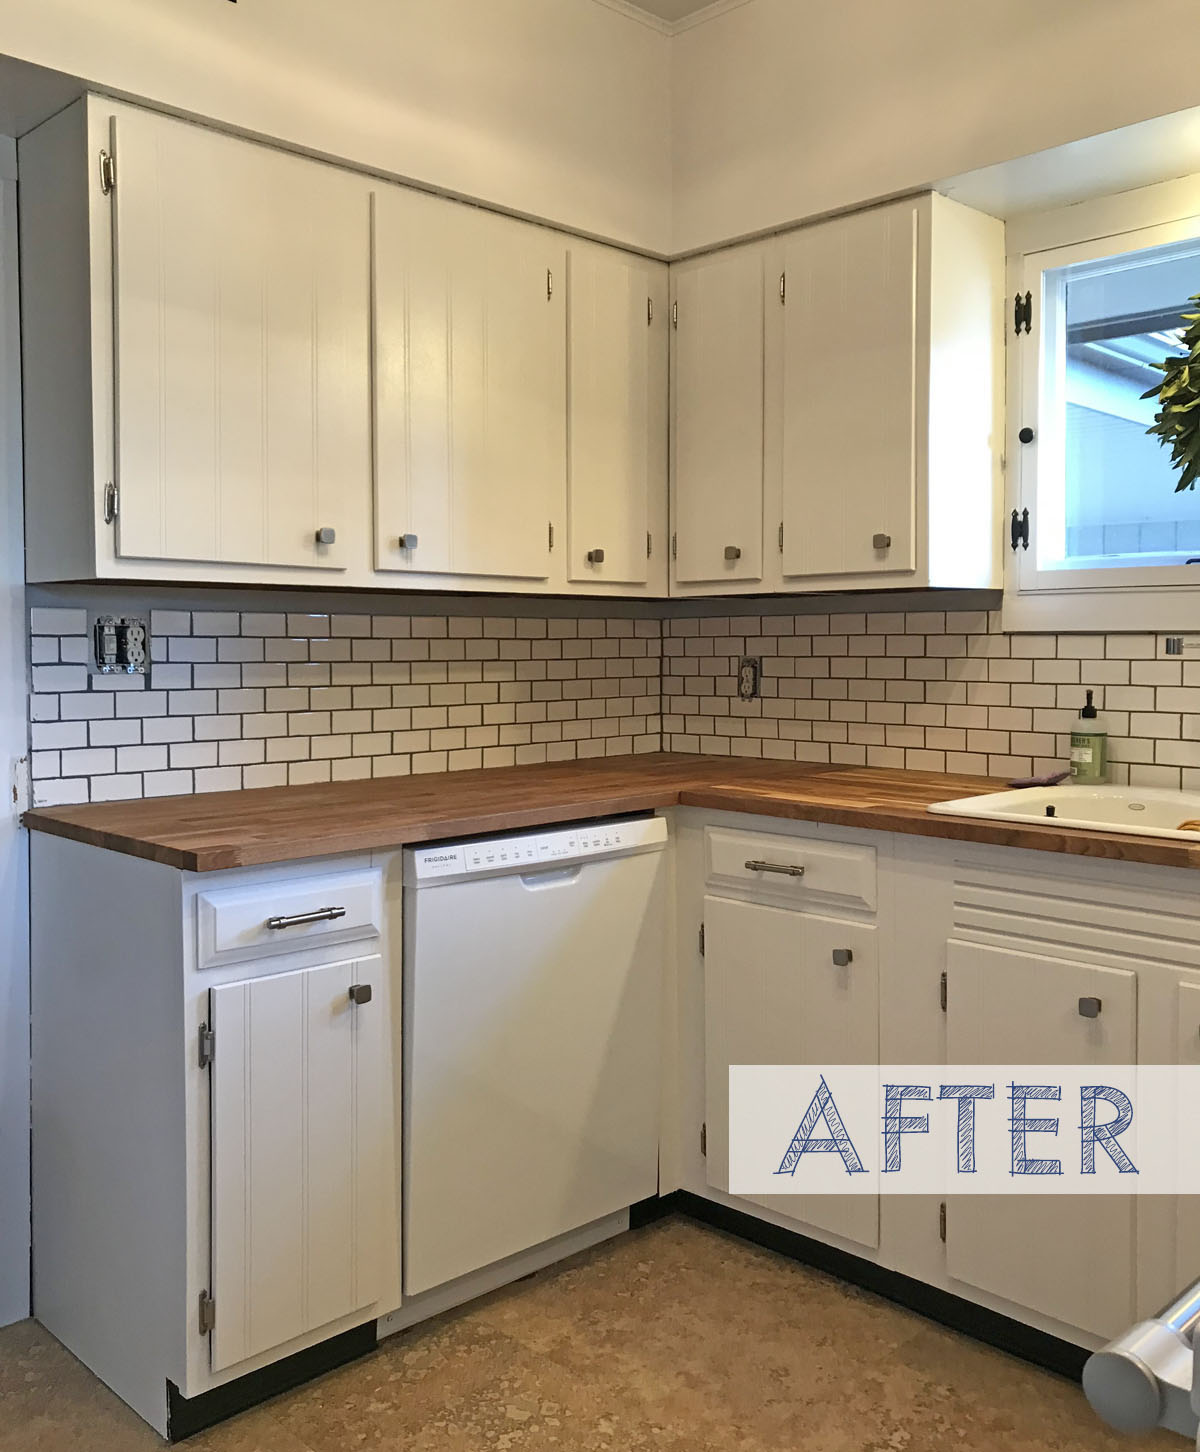 Before & After: White Subway Tile in a Vintage Style Kitchen